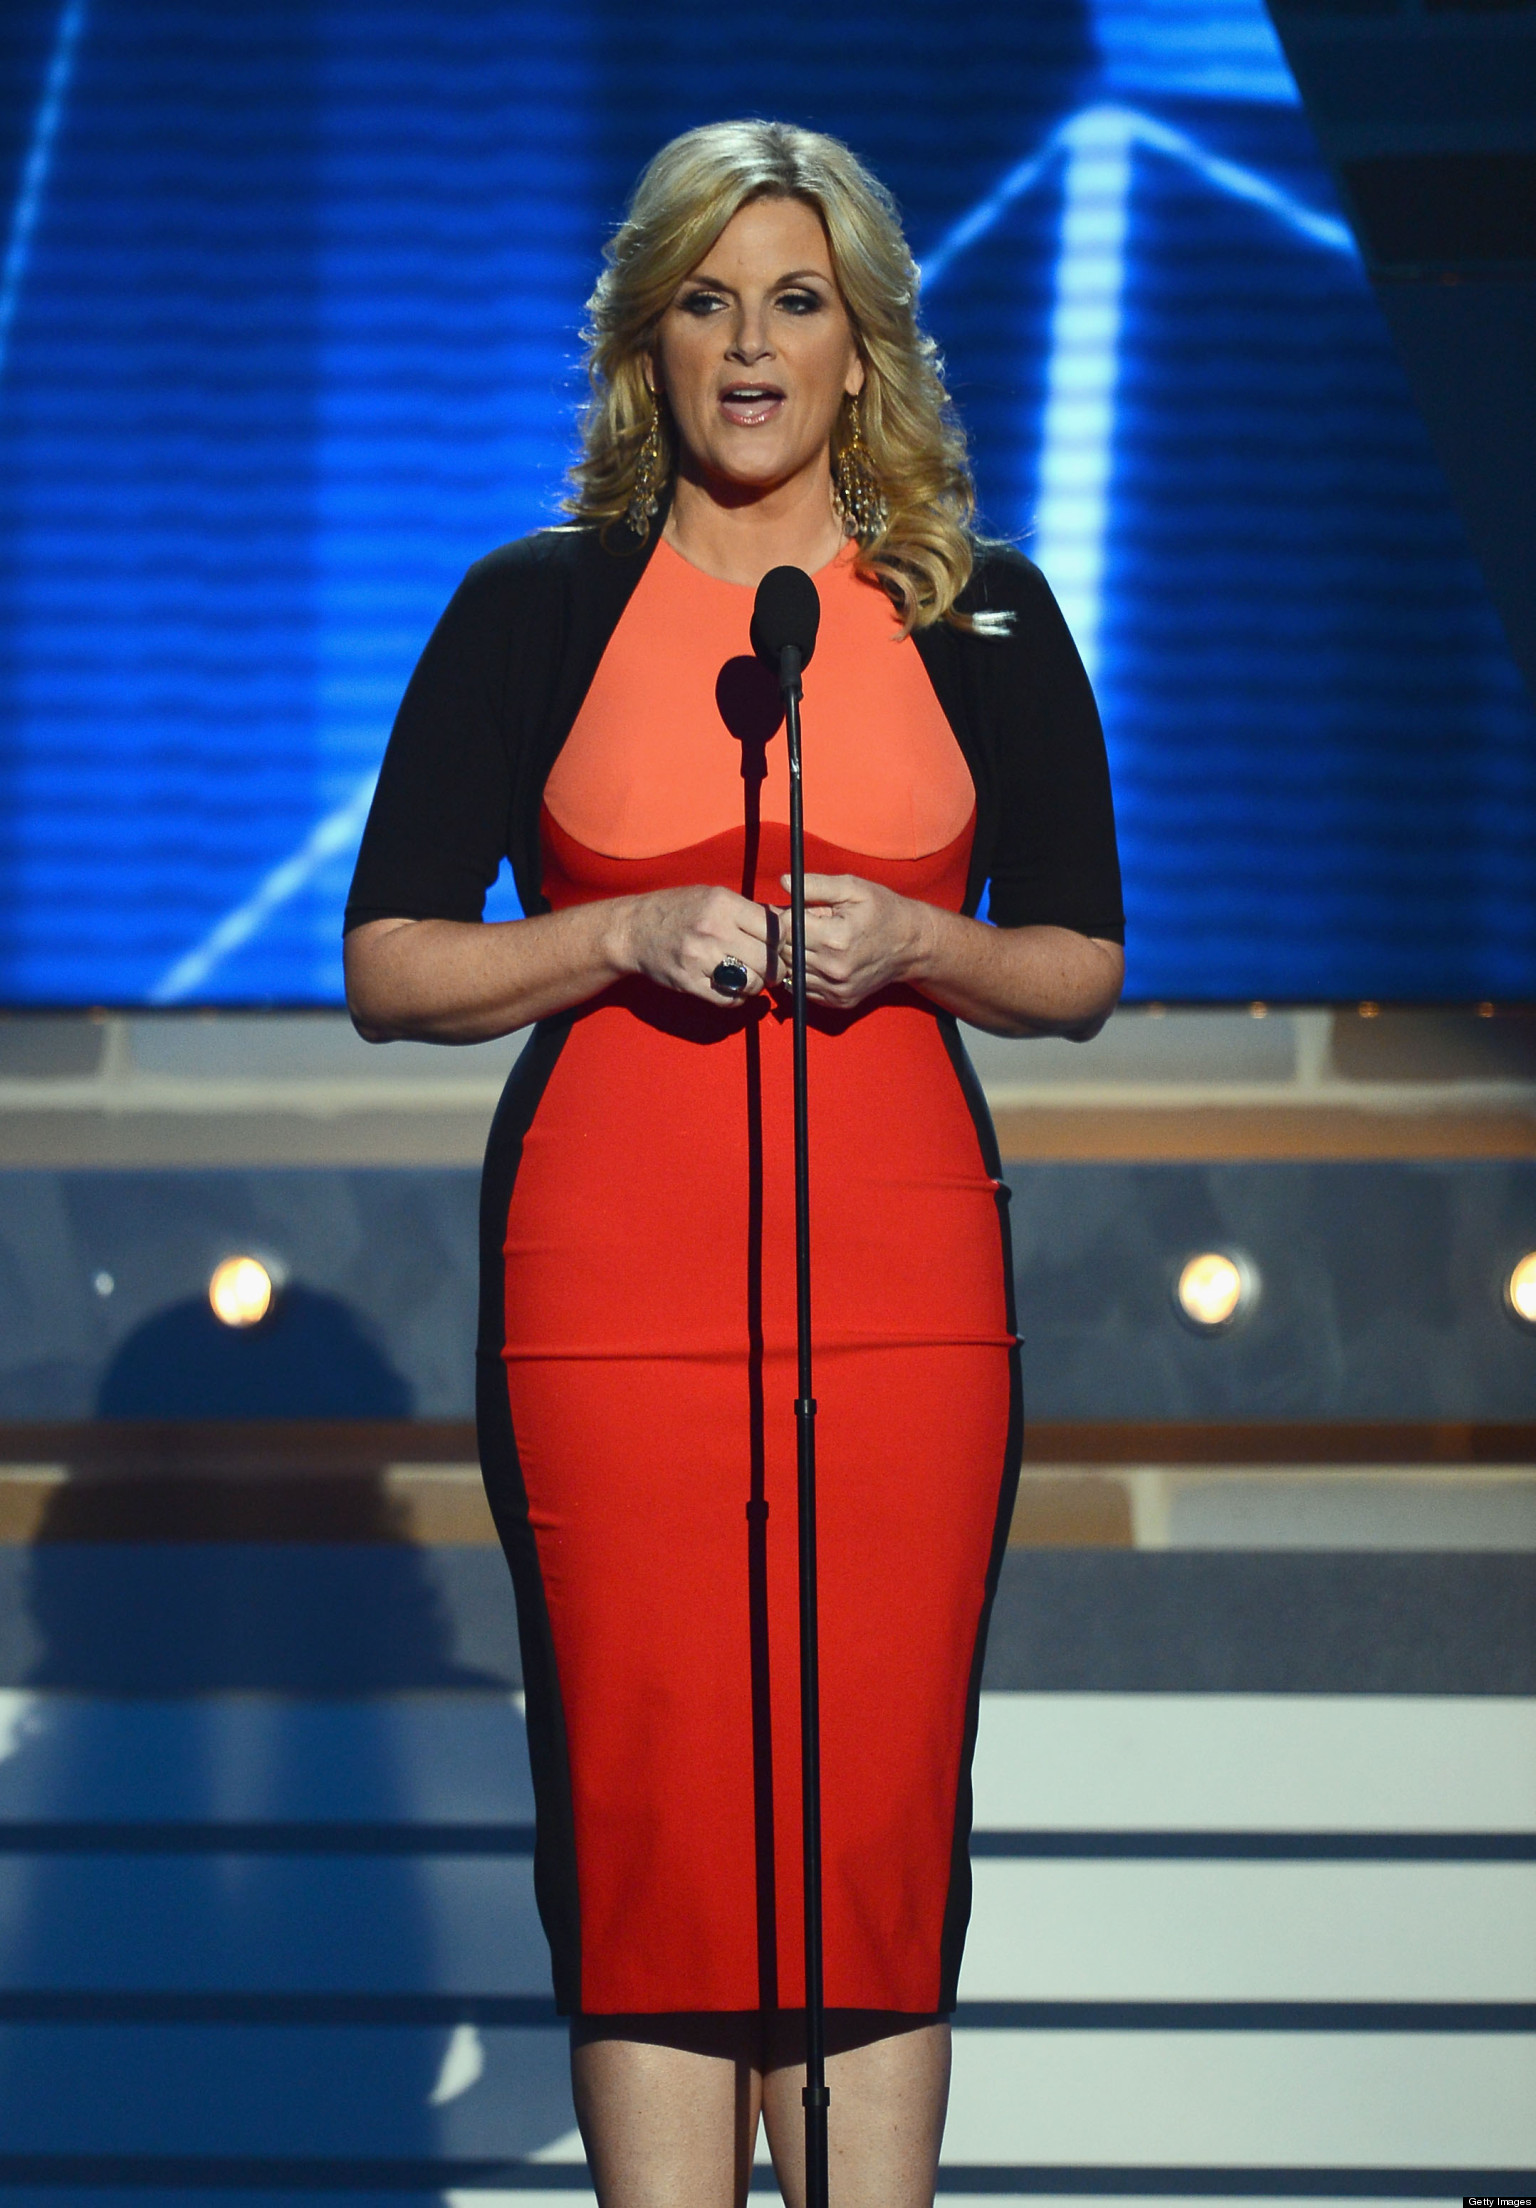 trisha yearwood 39 s weight loss on display at acm awards